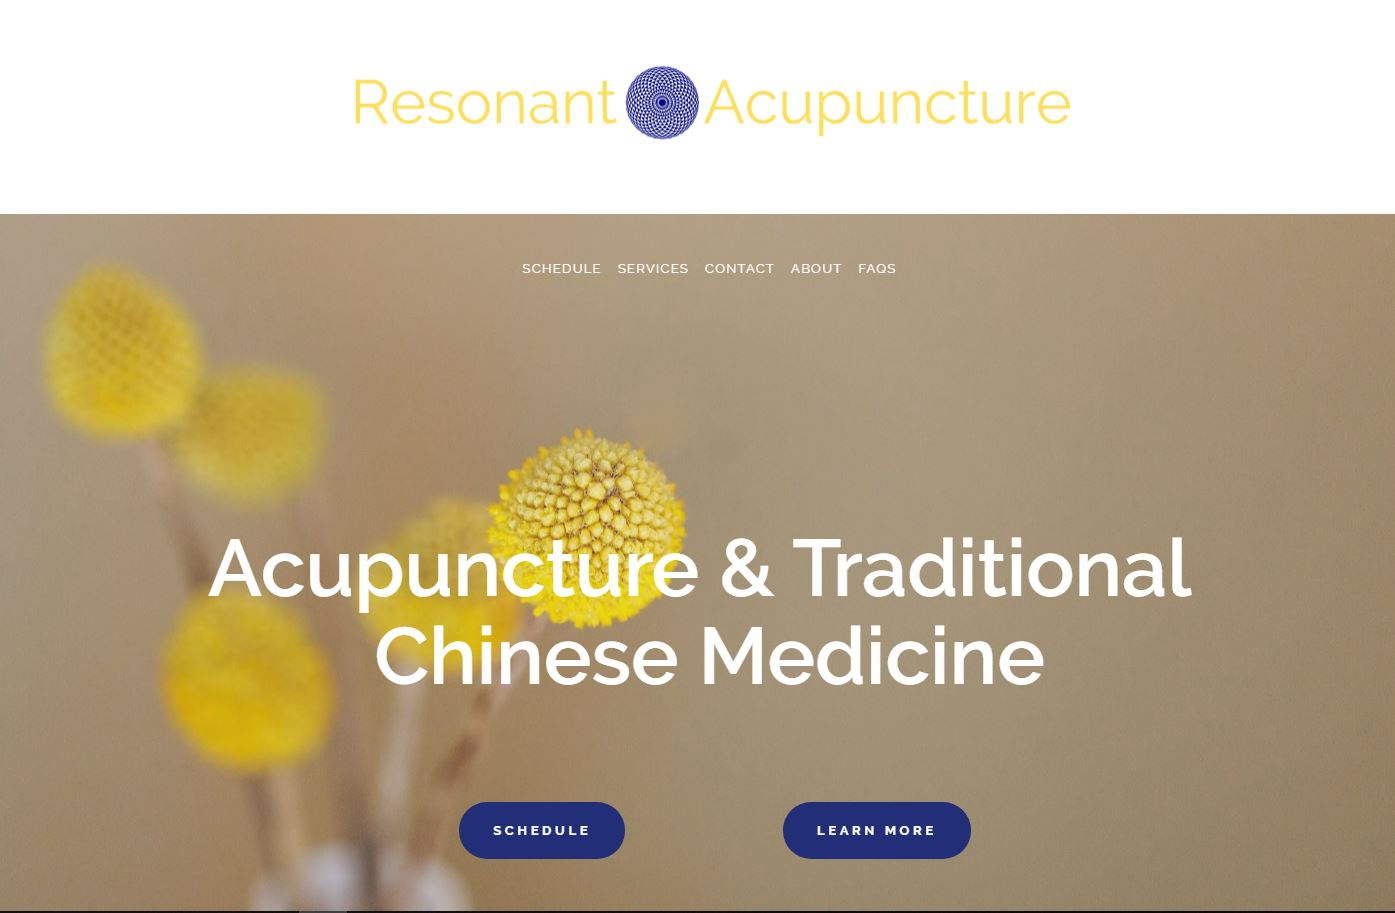 Resonant Acupuncture